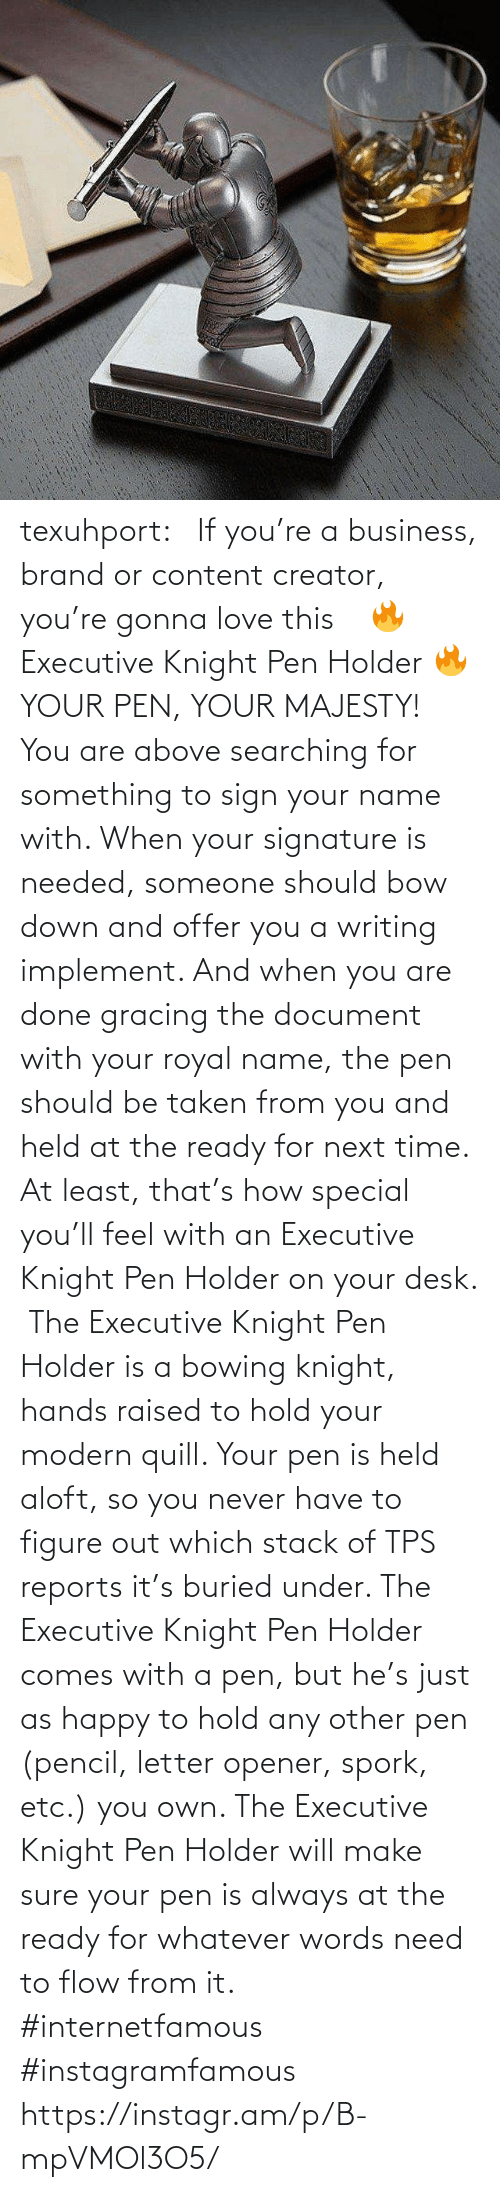 youre: texuhport:⎆ If you're a business, brand or content creator, you're gonna love this ⎆⁣ 🔥 Executive Knight Pen Holder 🔥⁣ YOUR PEN, YOUR MAJESTY!⁣ ⁣ You are above searching for something to sign your name with. When your signature is needed, someone should bow down and offer you a writing implement. And when you are done gracing the document with your royal name, the pen should be taken from you and held at the ready for next time. At least, that's how special you'll feel with an Executive Knight Pen Holder on your desk.⁣ ⁣ The Executive Knight Pen Holder is a bowing knight, hands raised to hold your modern quill. Your pen is held aloft, so you never have to figure out which stack of TPS reports it's buried under. The Executive Knight Pen Holder comes with a pen, but he's just as happy to hold any other pen (pencil, letter opener, spork, etc.) you own. The Executive Knight Pen Holder will make sure your pen is always at the ready for whatever words need to flow from it.⁣ #internetfamous  #instagramfamous https://instagr.am/p/B-mpVMOl3O5/